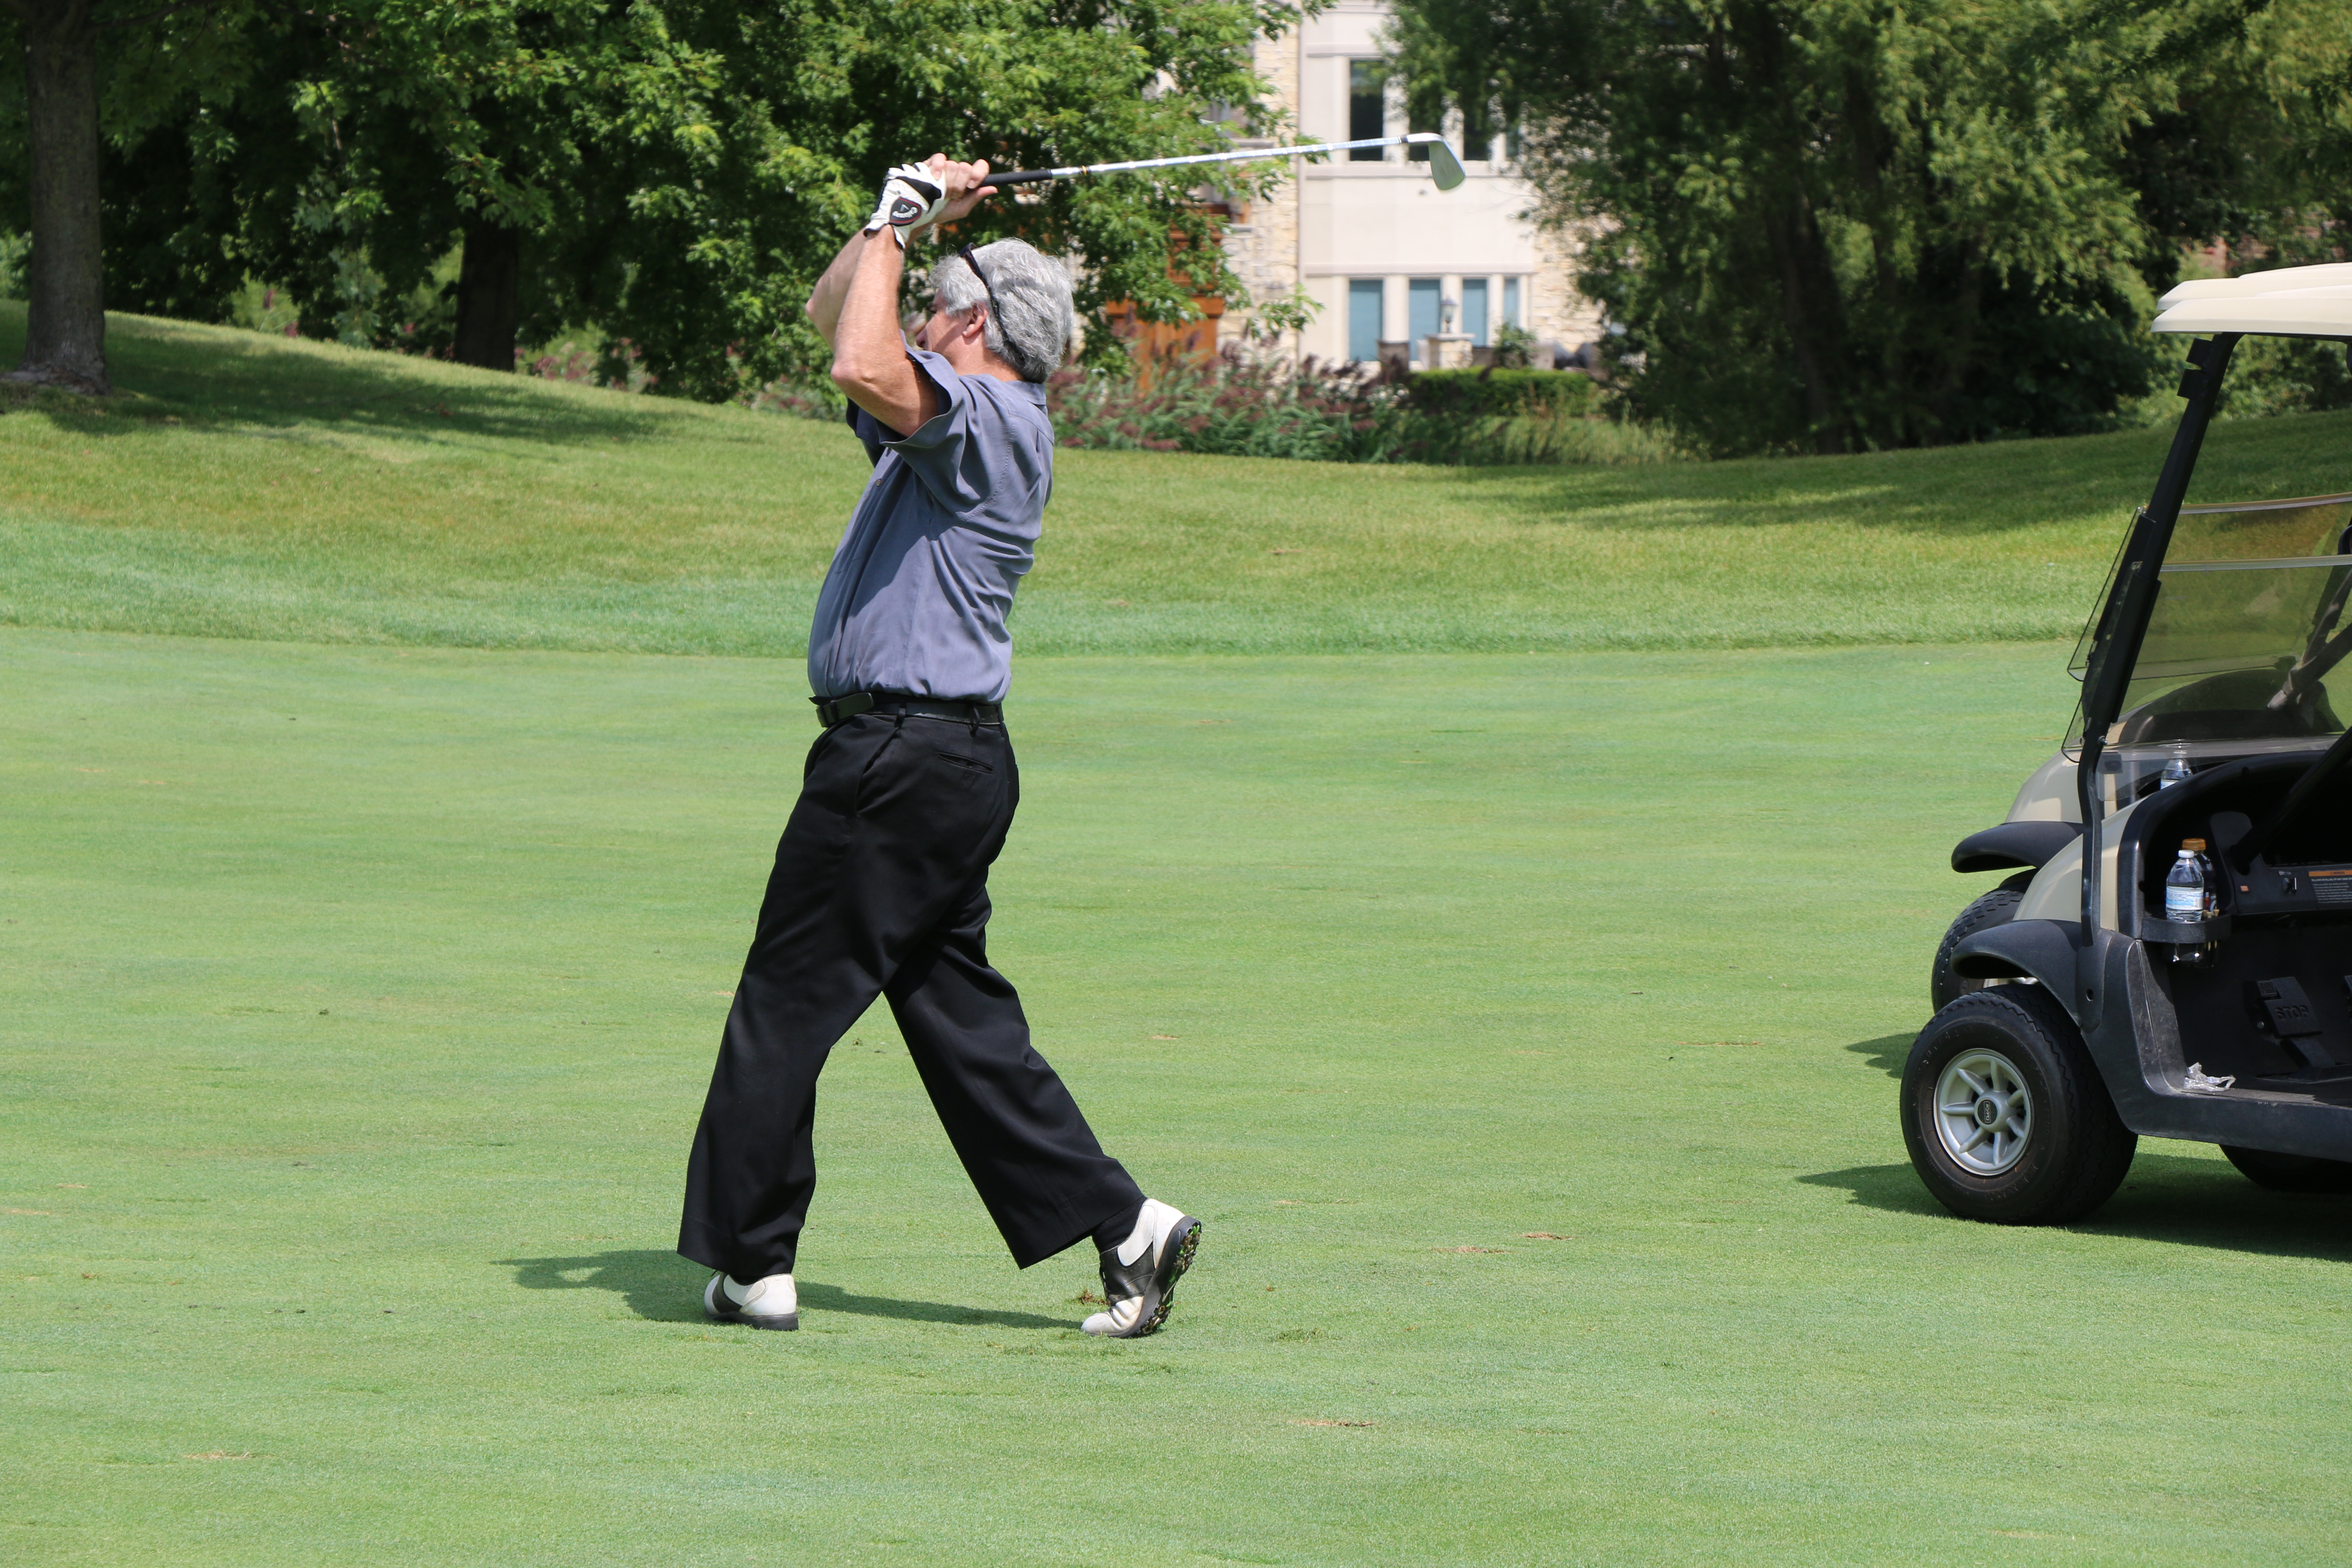 5th Annual Swingin' For The Vets gallery image #11